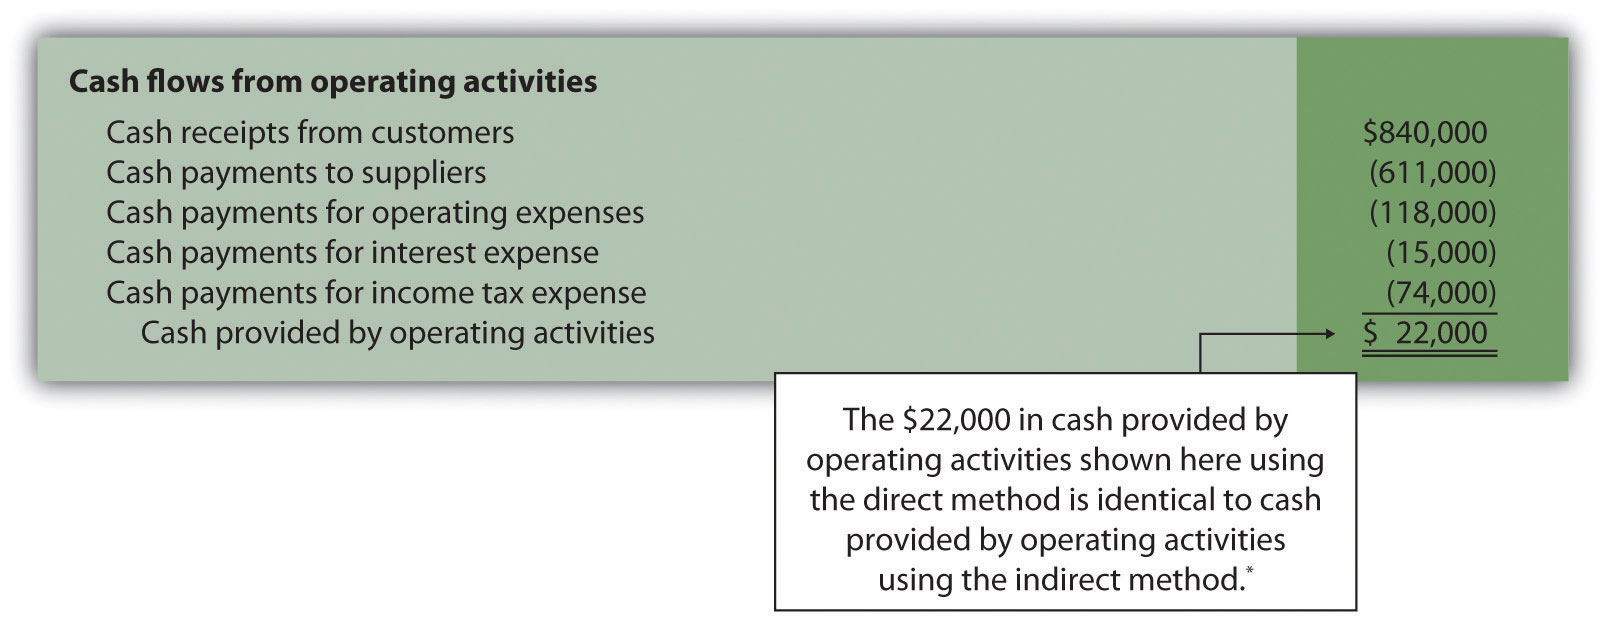 Appendix Using The Direct Method To Prepare The Statement Of Cash Flows